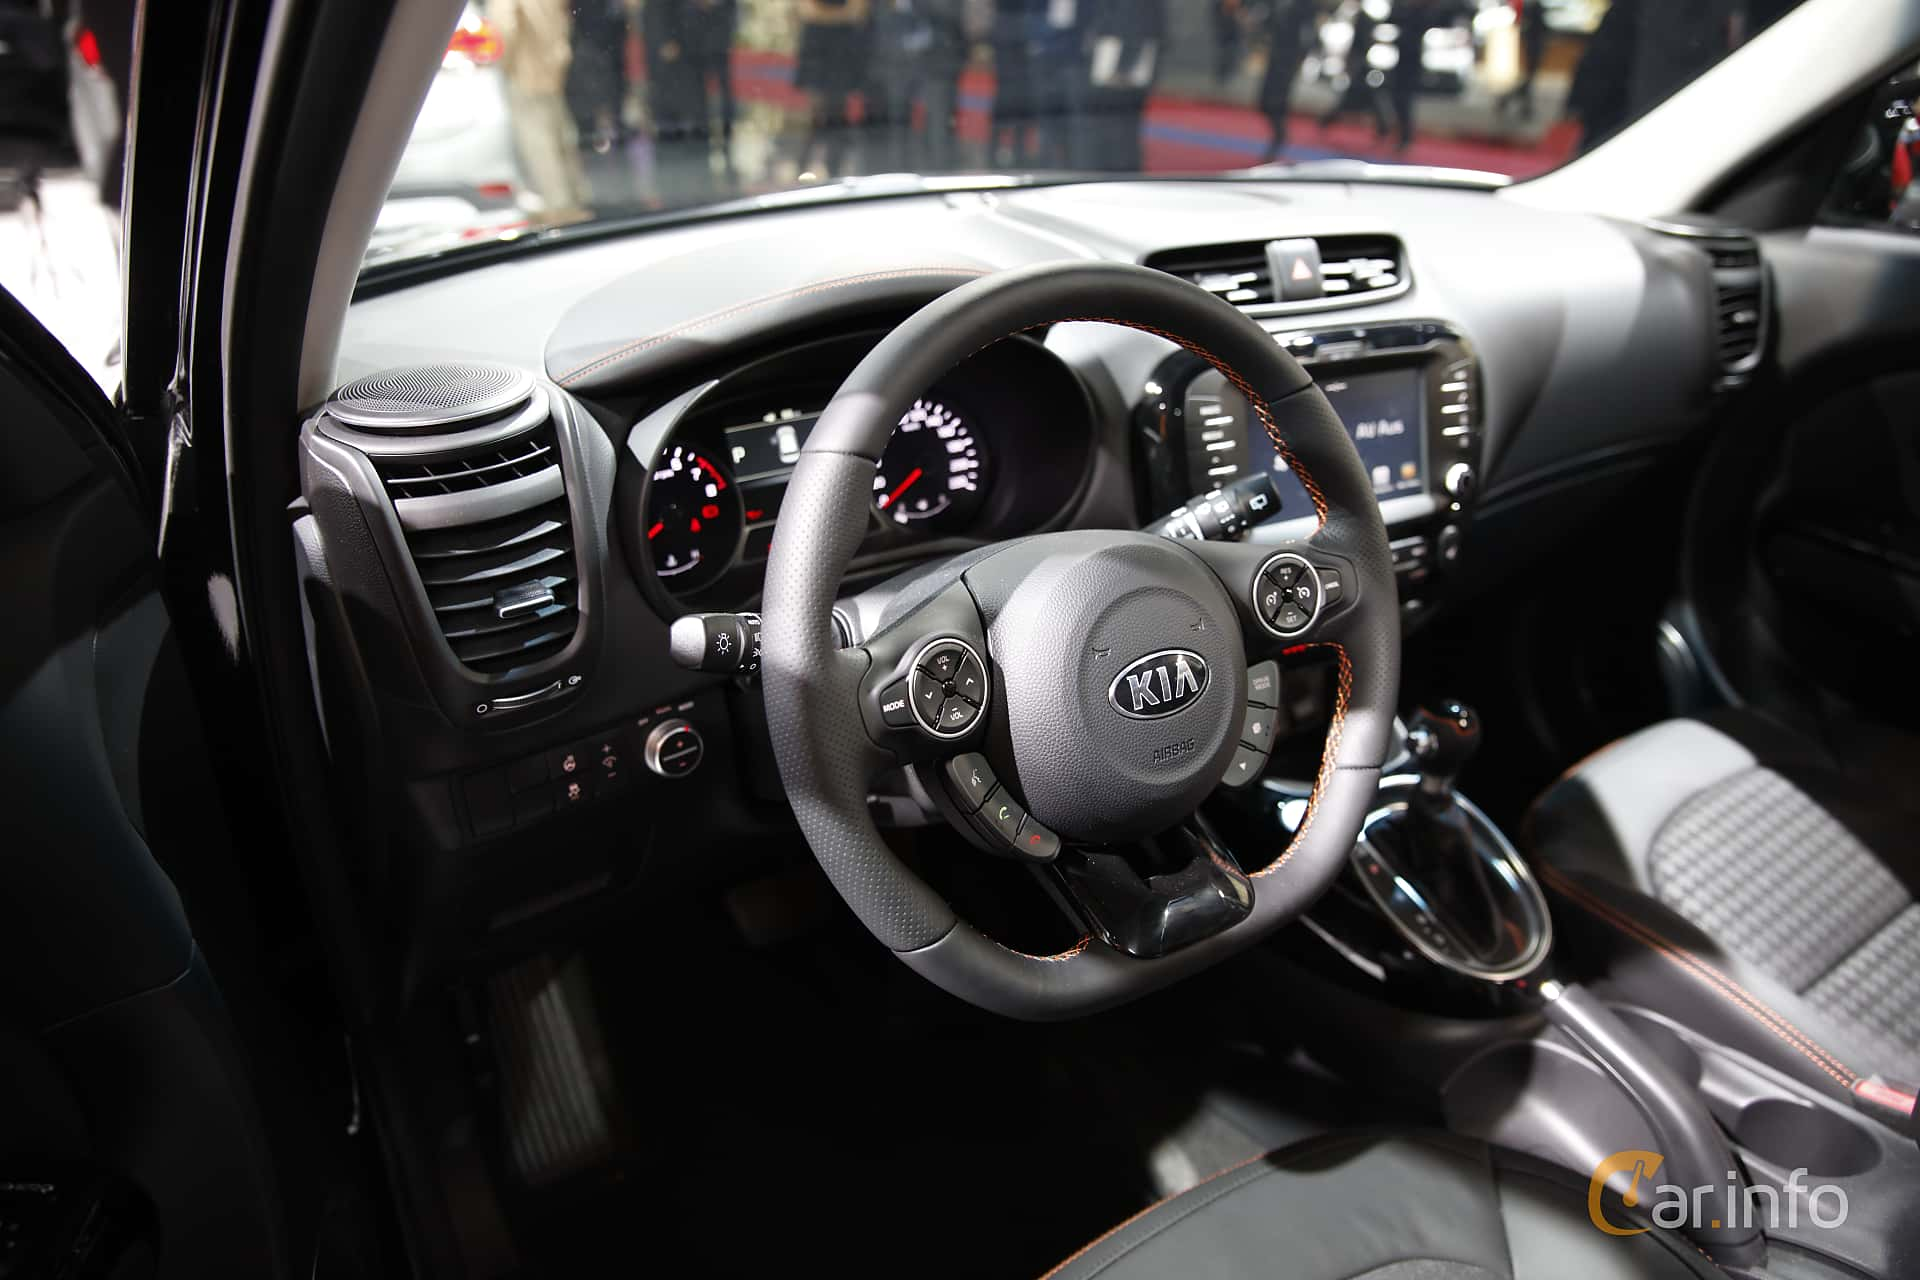 kia soul 1 6 gdi manuell 132hk 2017 at paris motor show 2016. Black Bedroom Furniture Sets. Home Design Ideas